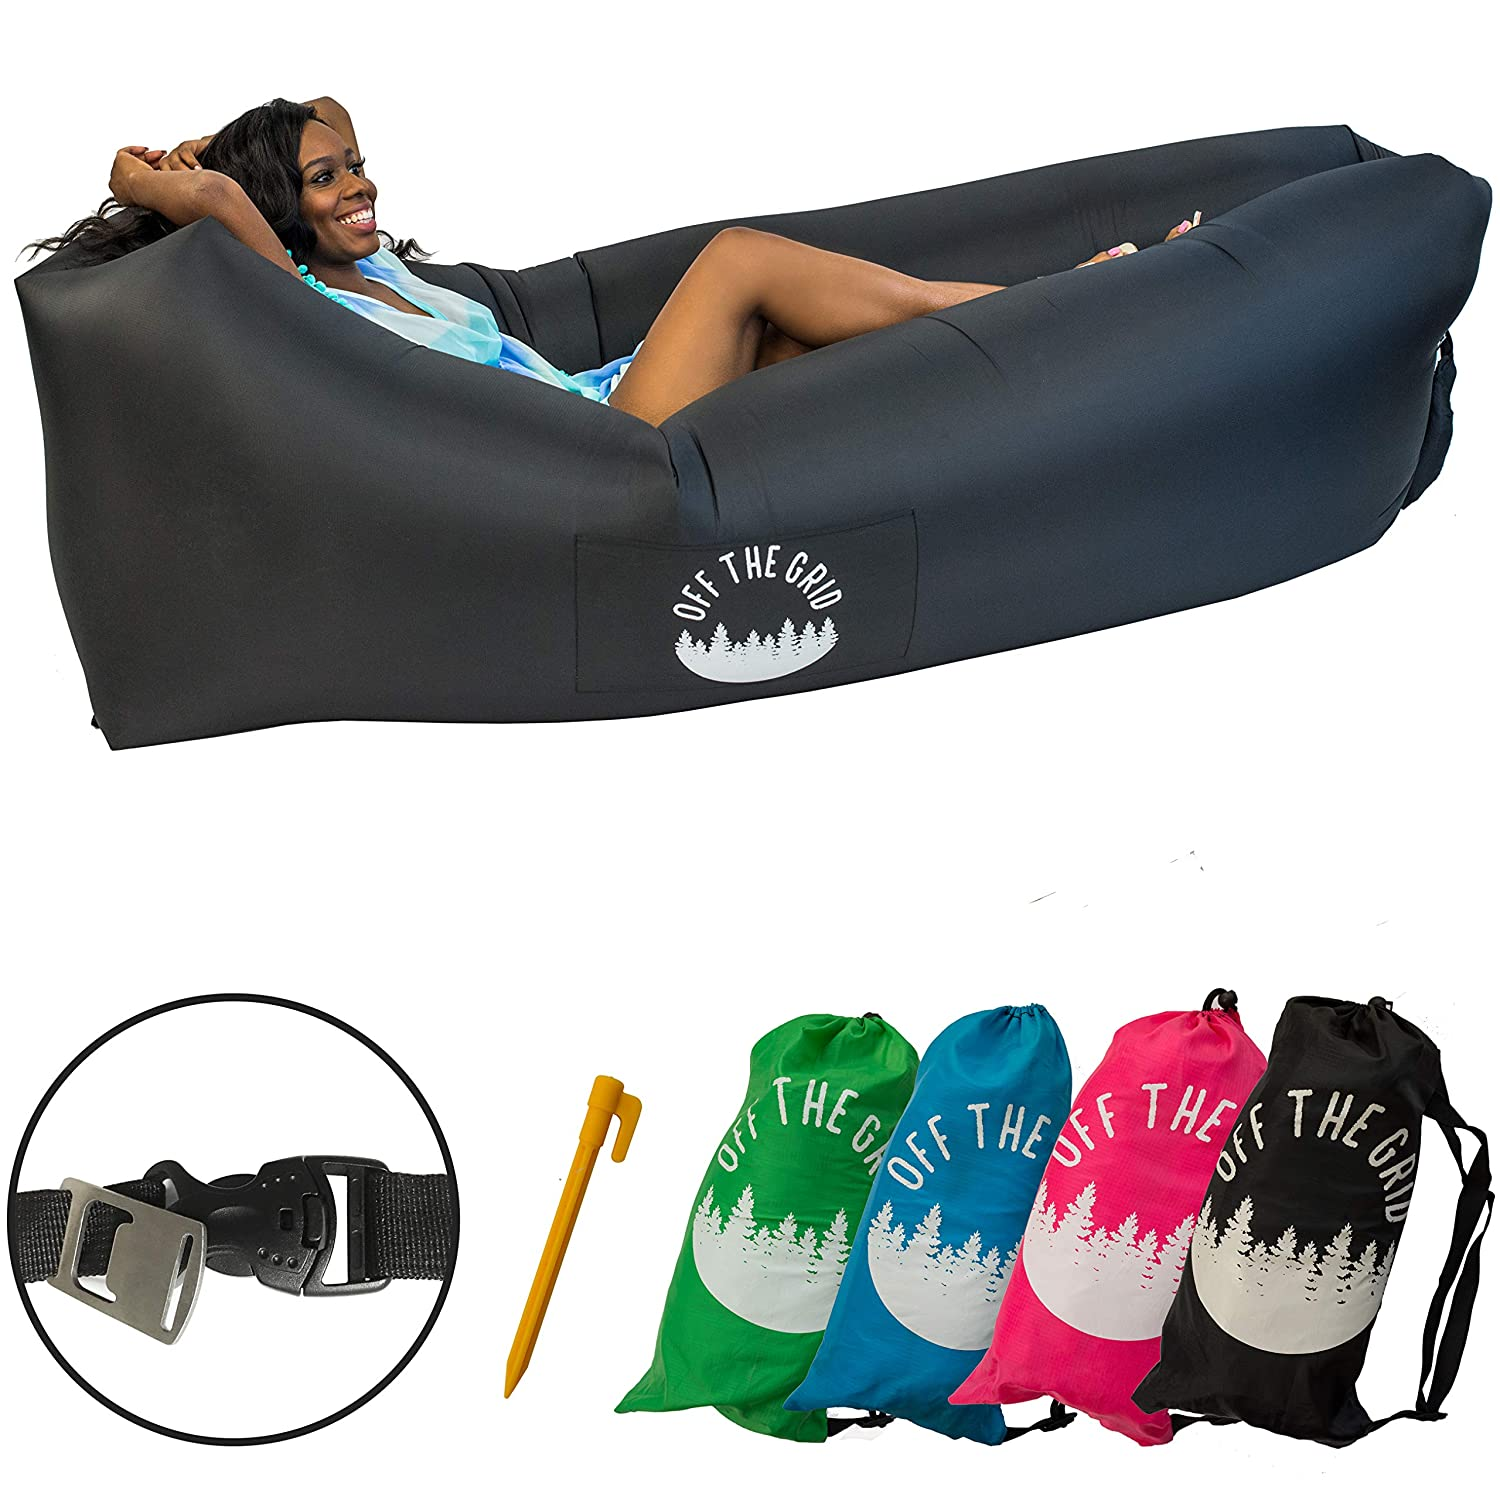 Prime Off The Grid Inflatable Lounger Air Sofa Wind Chair Hammock Floating Portable Bed For Beach Pool Camping Outdoors Lazy Bag Cloud Couch Ocoug Best Dining Table And Chair Ideas Images Ocougorg